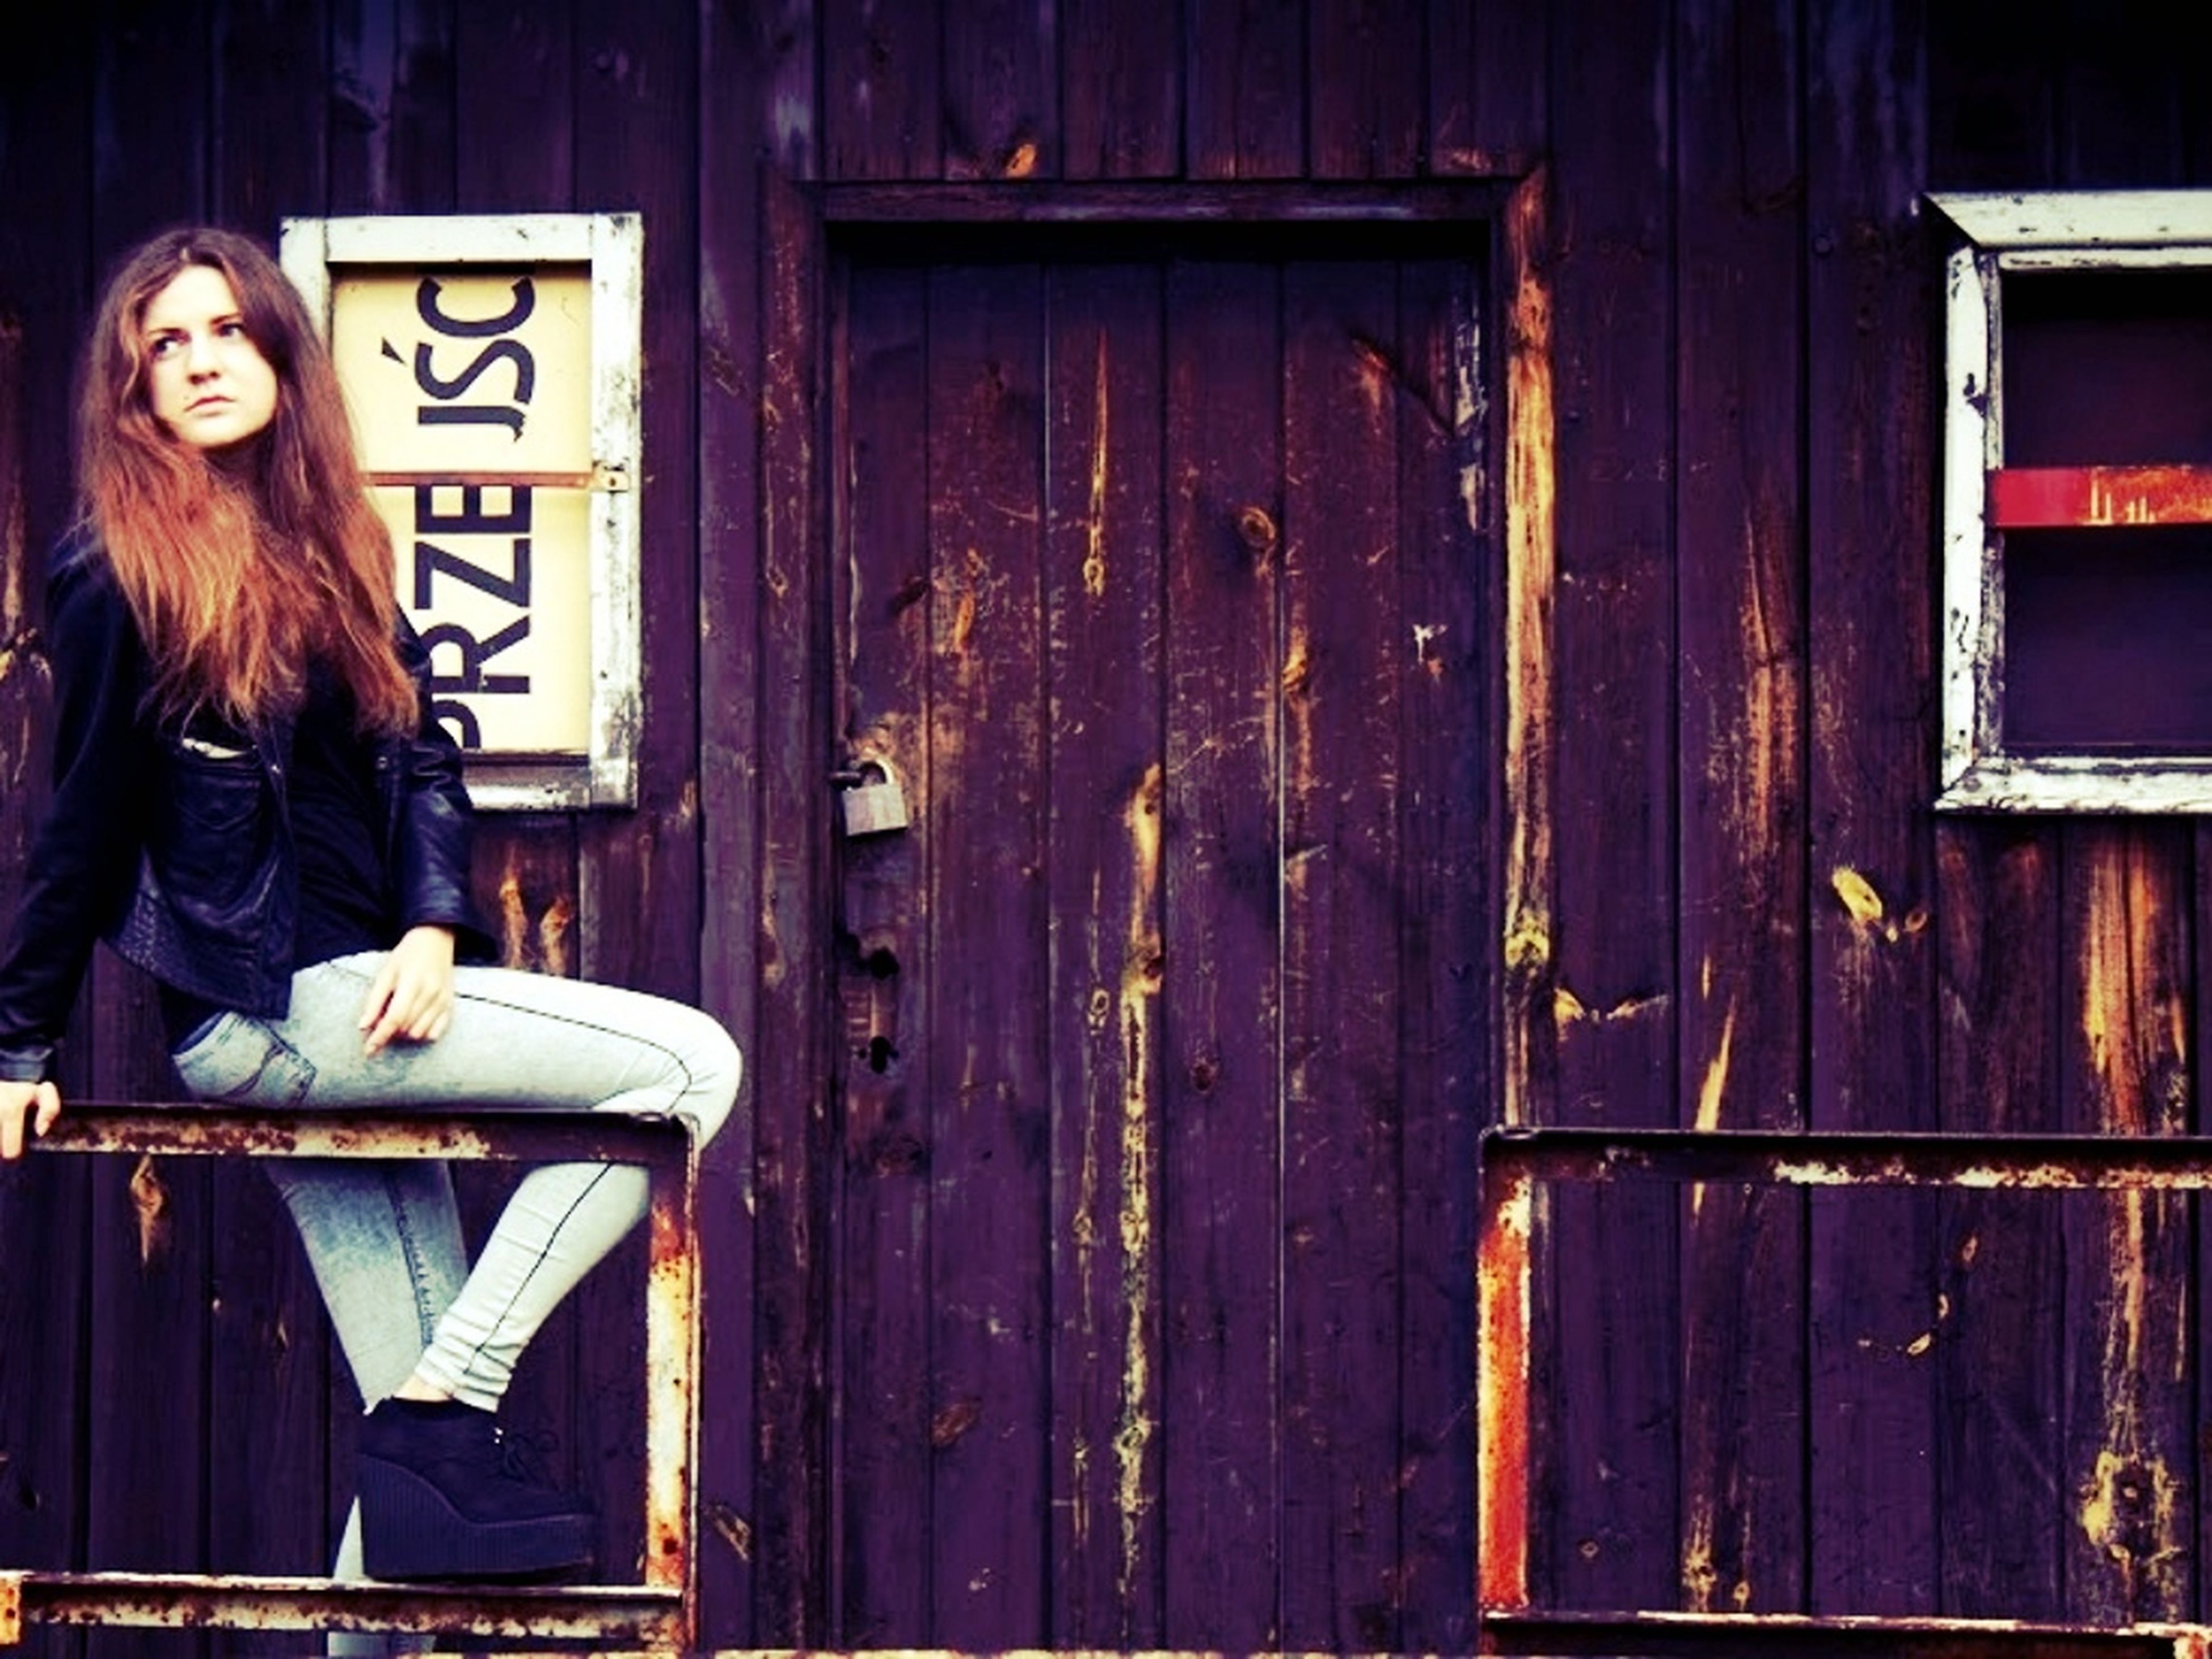 young adult, lifestyles, person, building exterior, built structure, casual clothing, standing, architecture, door, front view, young women, leisure activity, house, three quarter length, waist up, wood - material, long hair, portrait